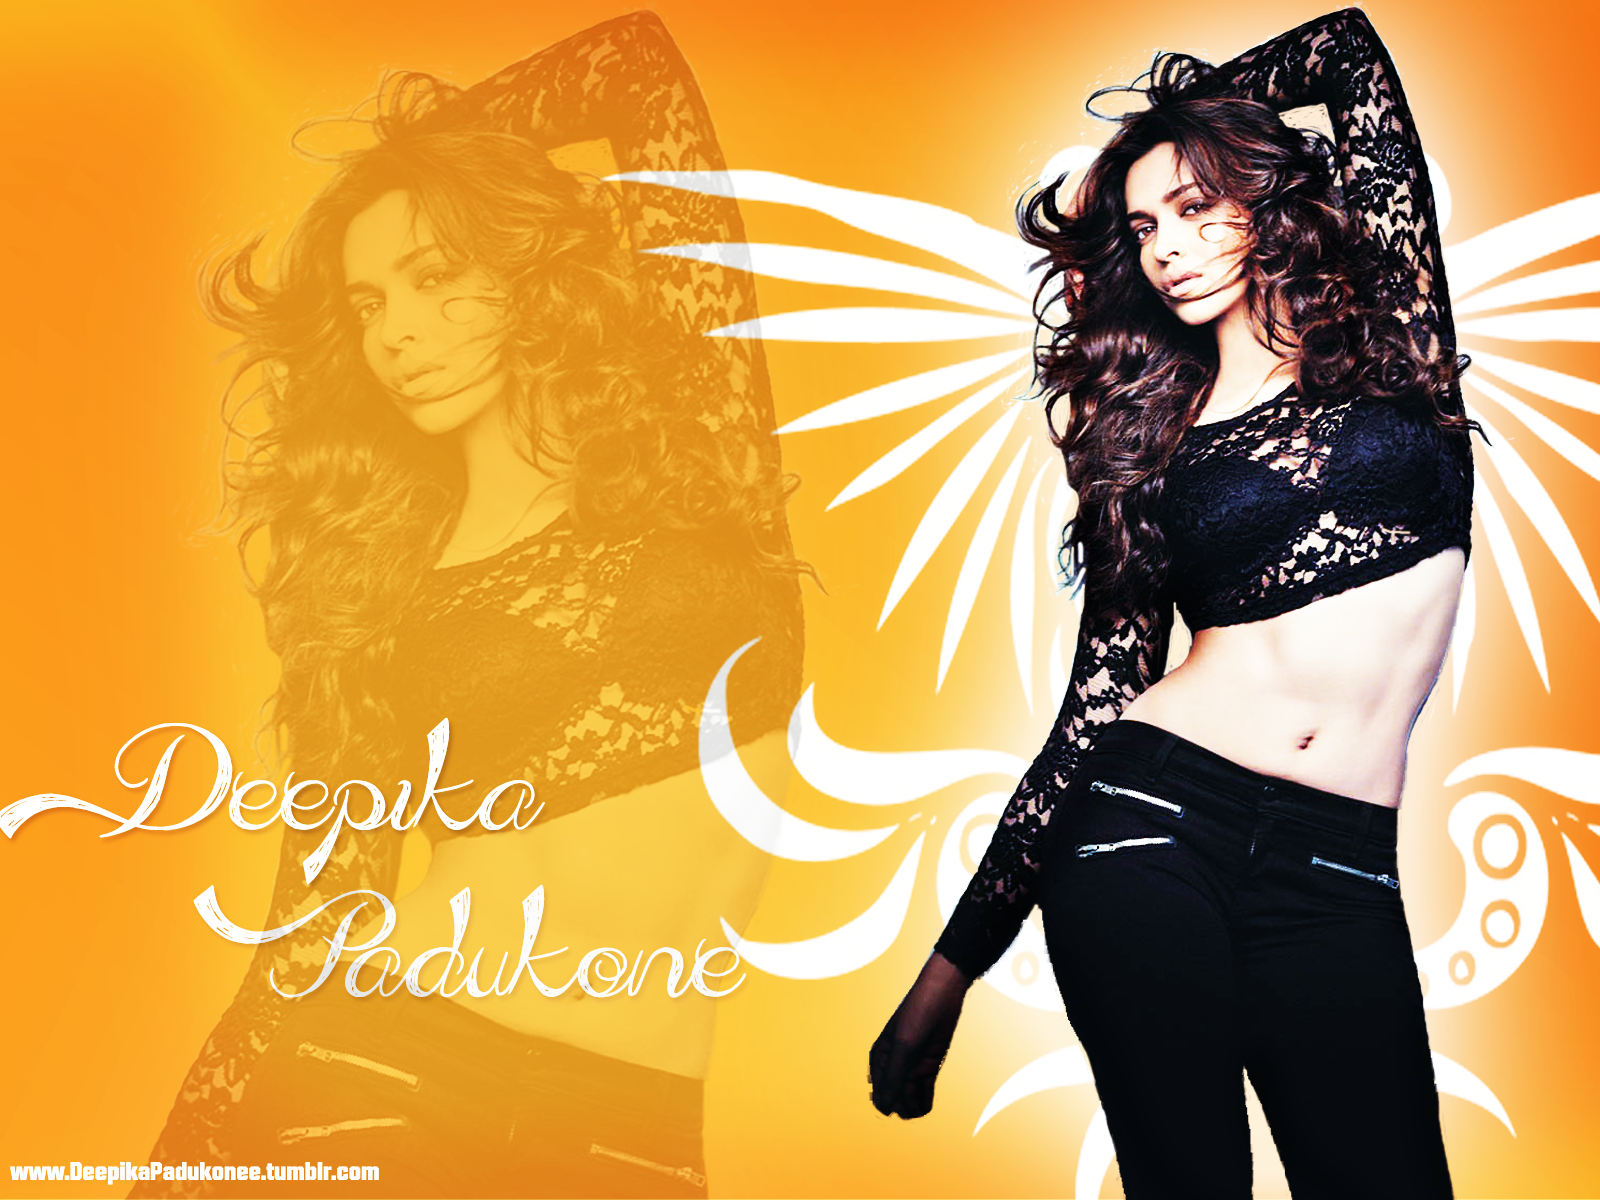 Deepika Padukone Hottest Wallpaper for your Desktop